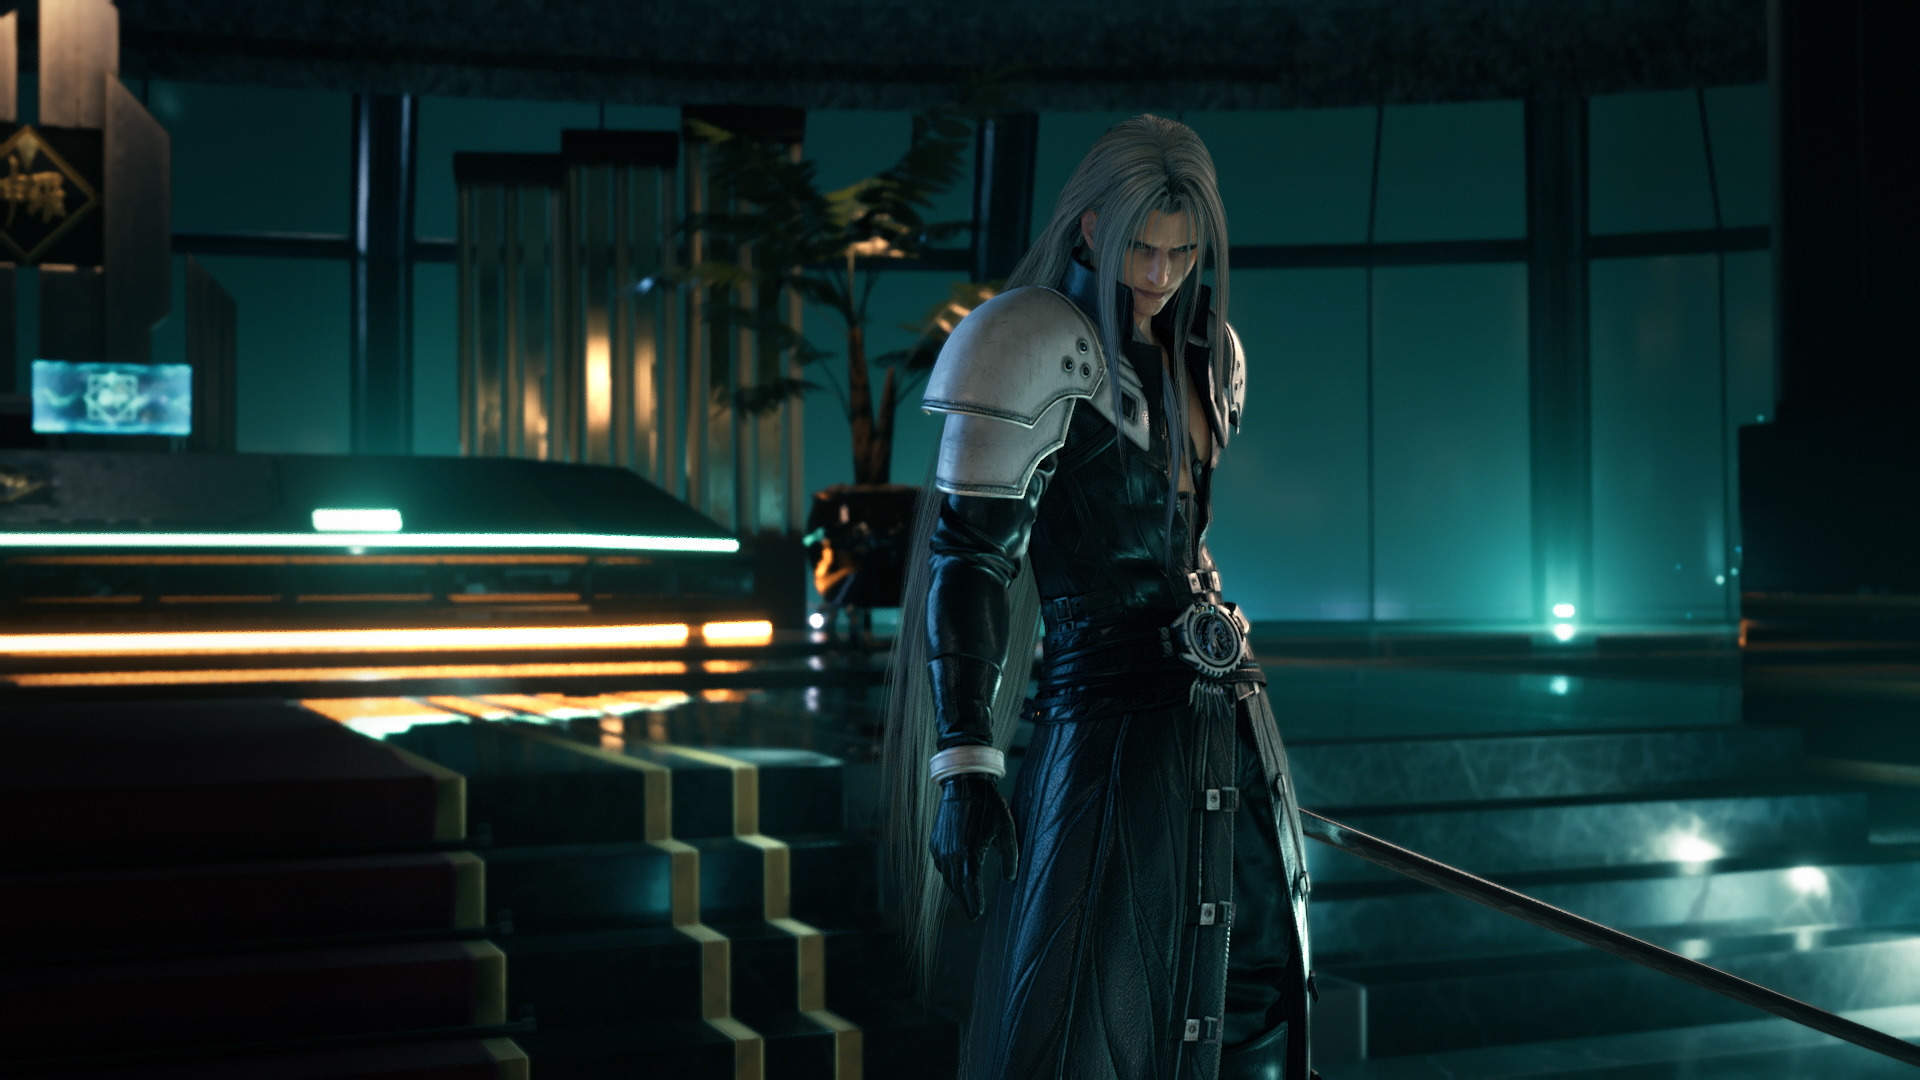 New Final Fantasy 7 Remake Screenshots And Details Highlight Sephiroth Aerith The All New Roch Shiva Summon And More